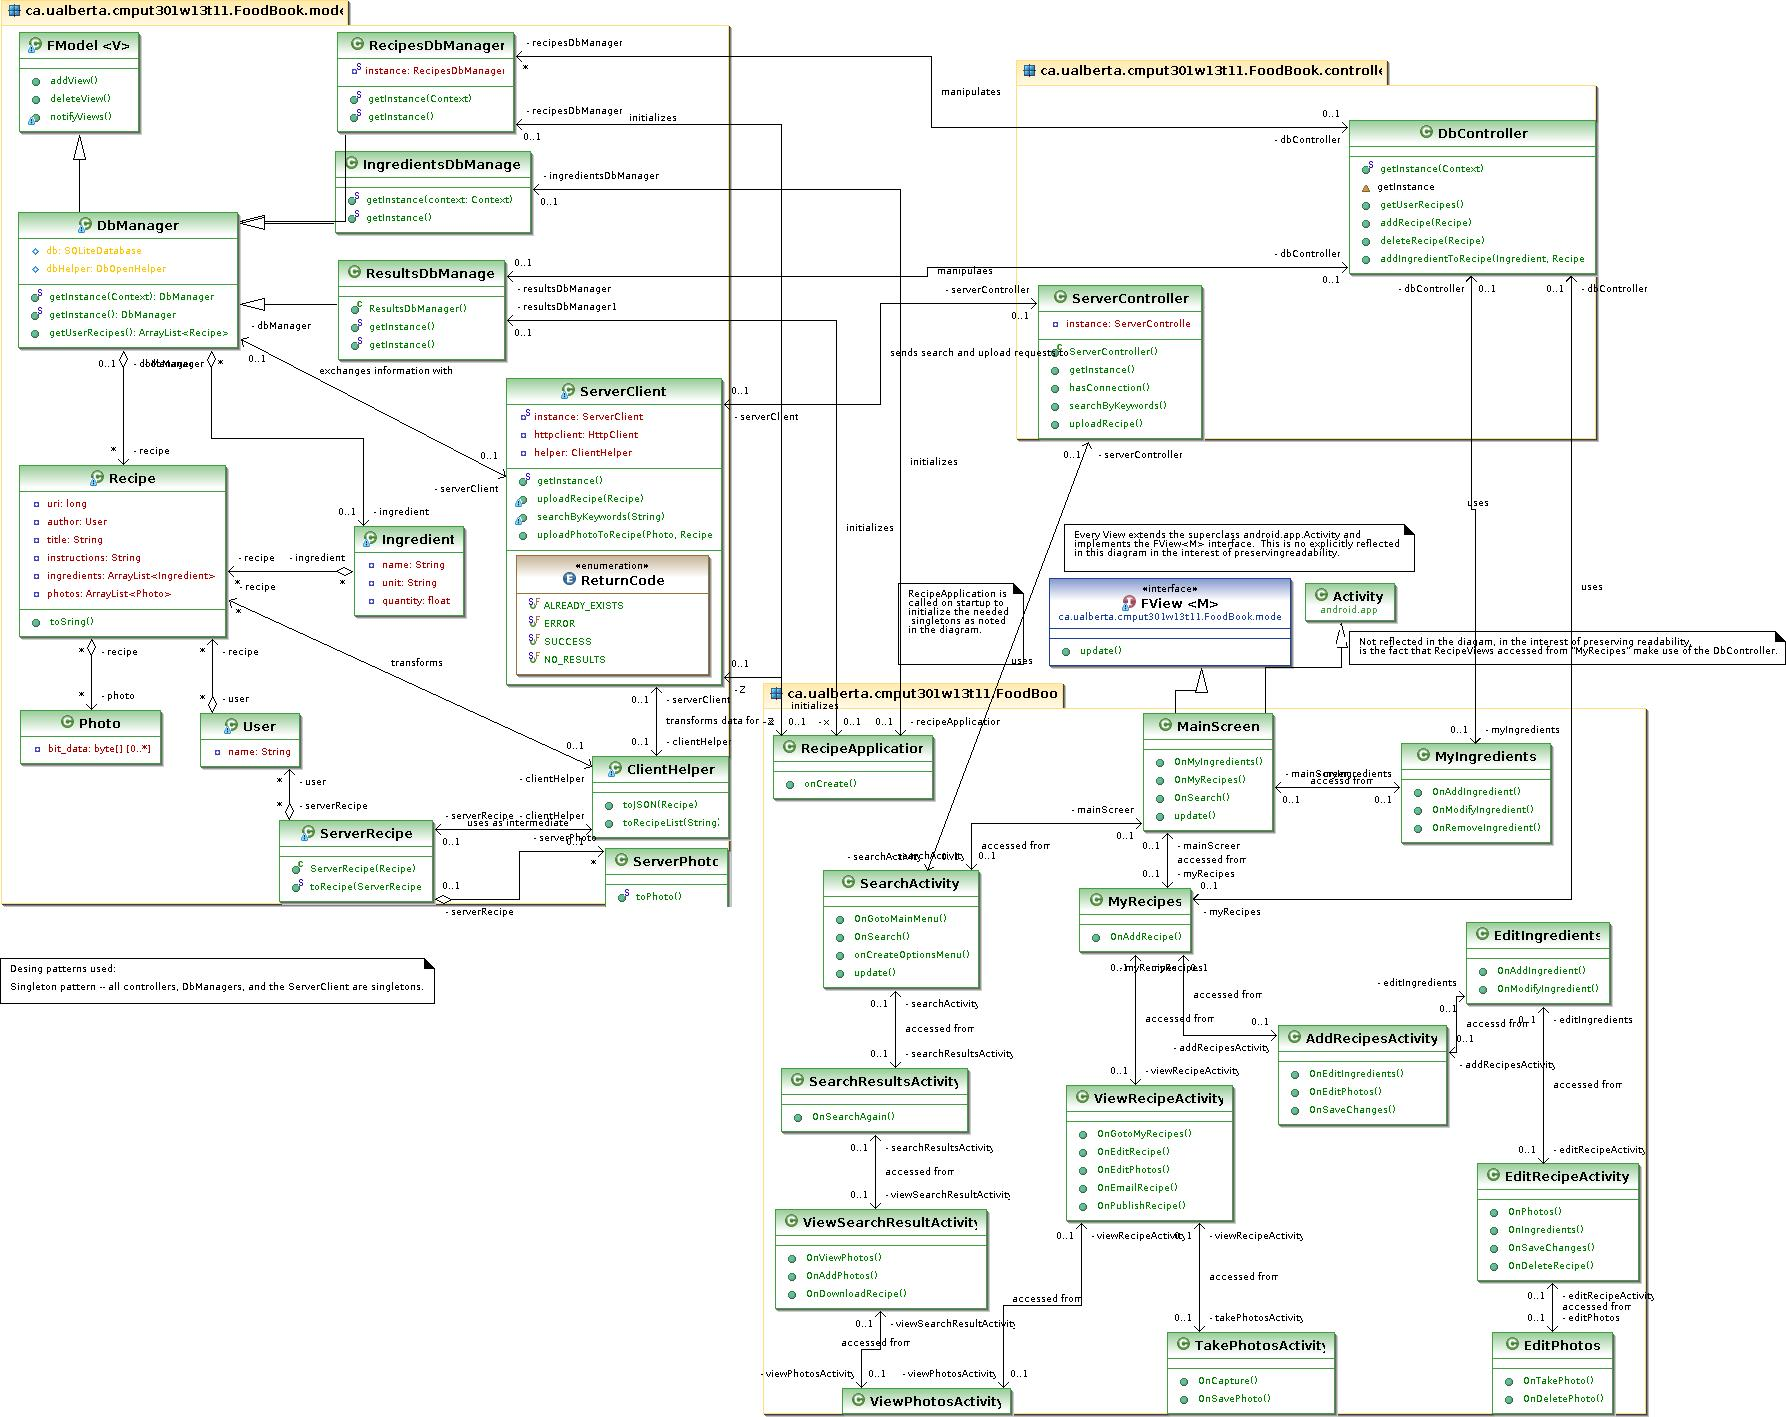 Uml class diagram cmput301w13t11foodbook wiki github uml class diagram ccuart Image collections